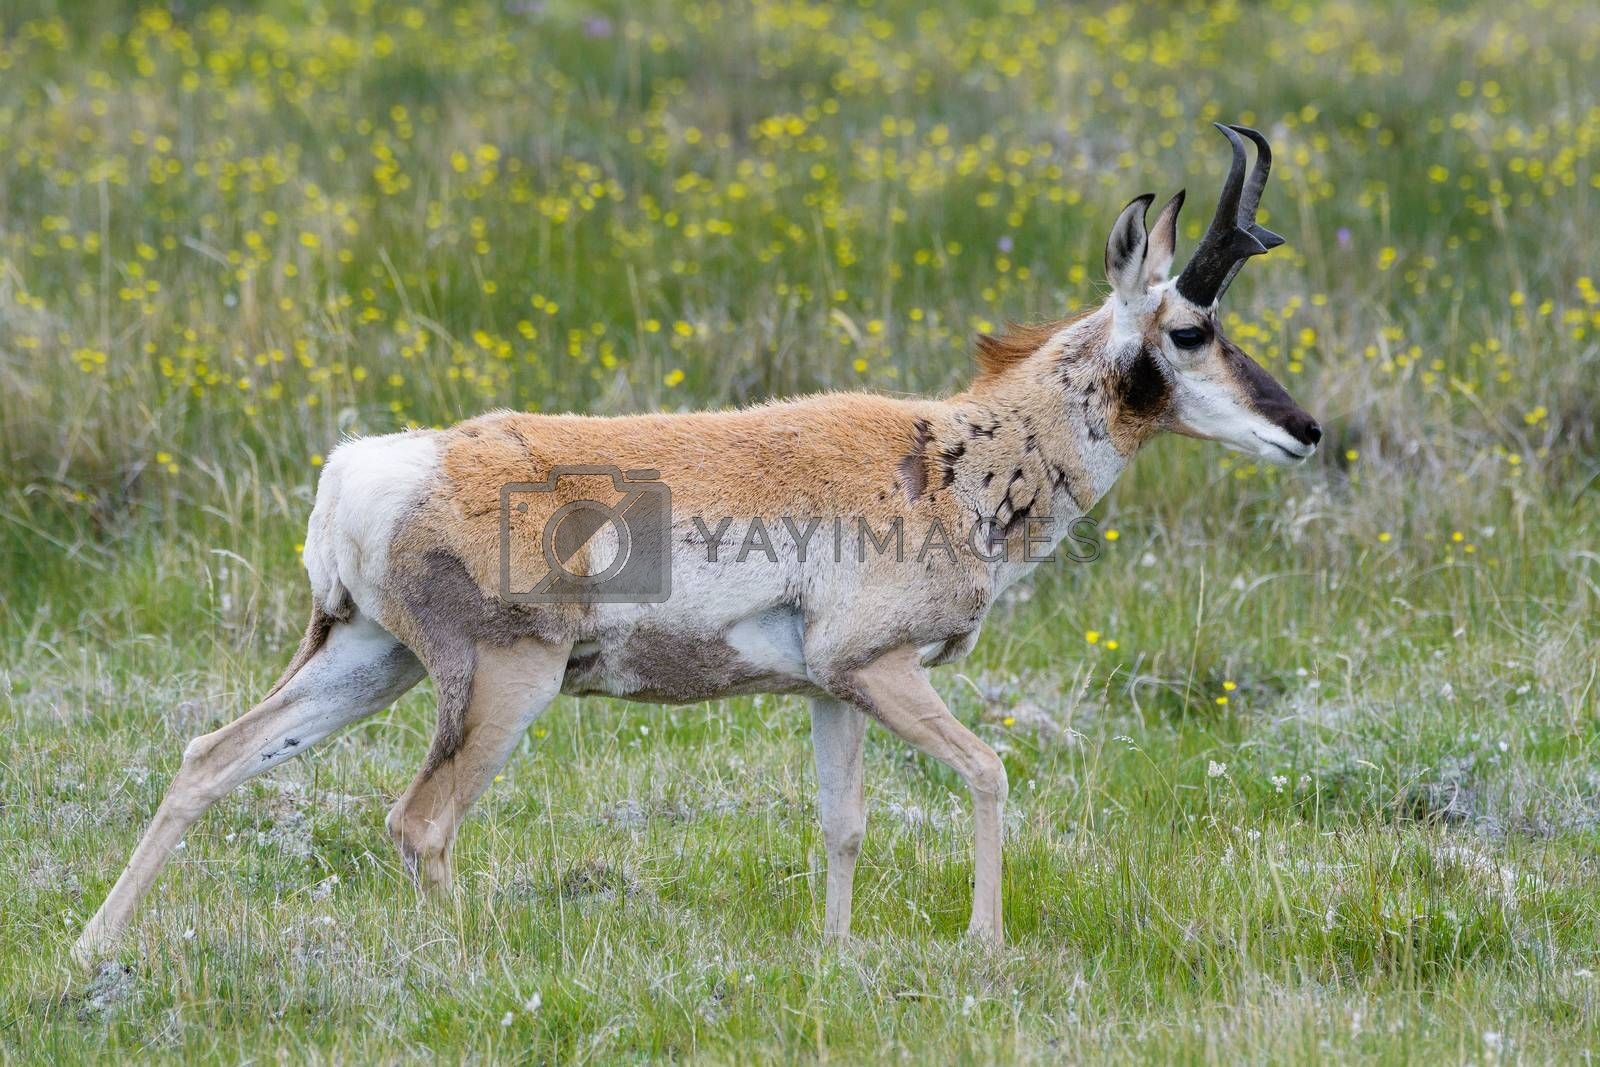 Wild Pronghorn in the Colorado Grasslands by Gary Gray